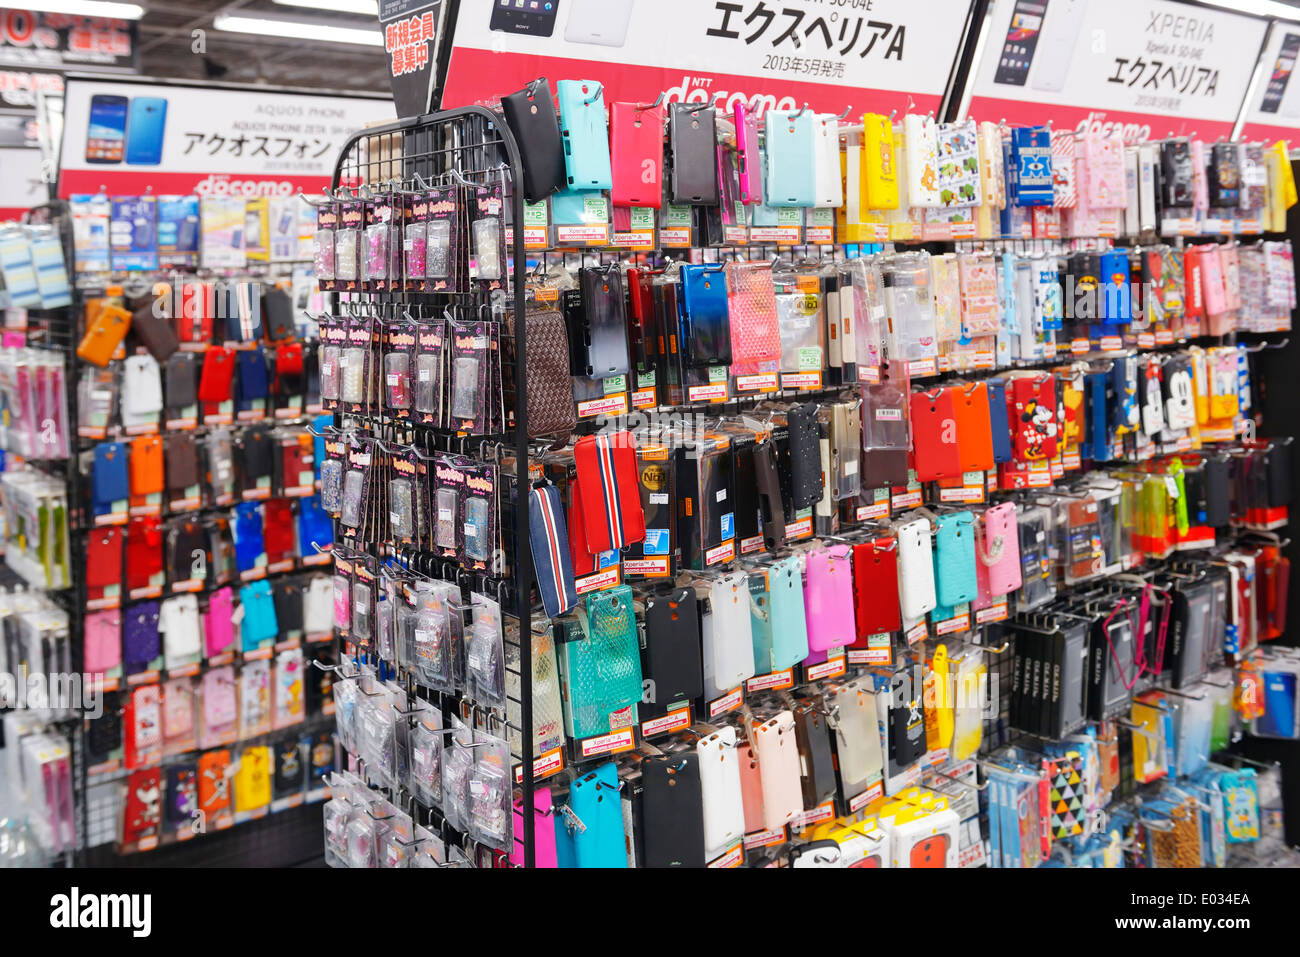 Cellphone cases and accessories at electronics store Yodobashi Camera, Tokyo, Japan. - Stock Image